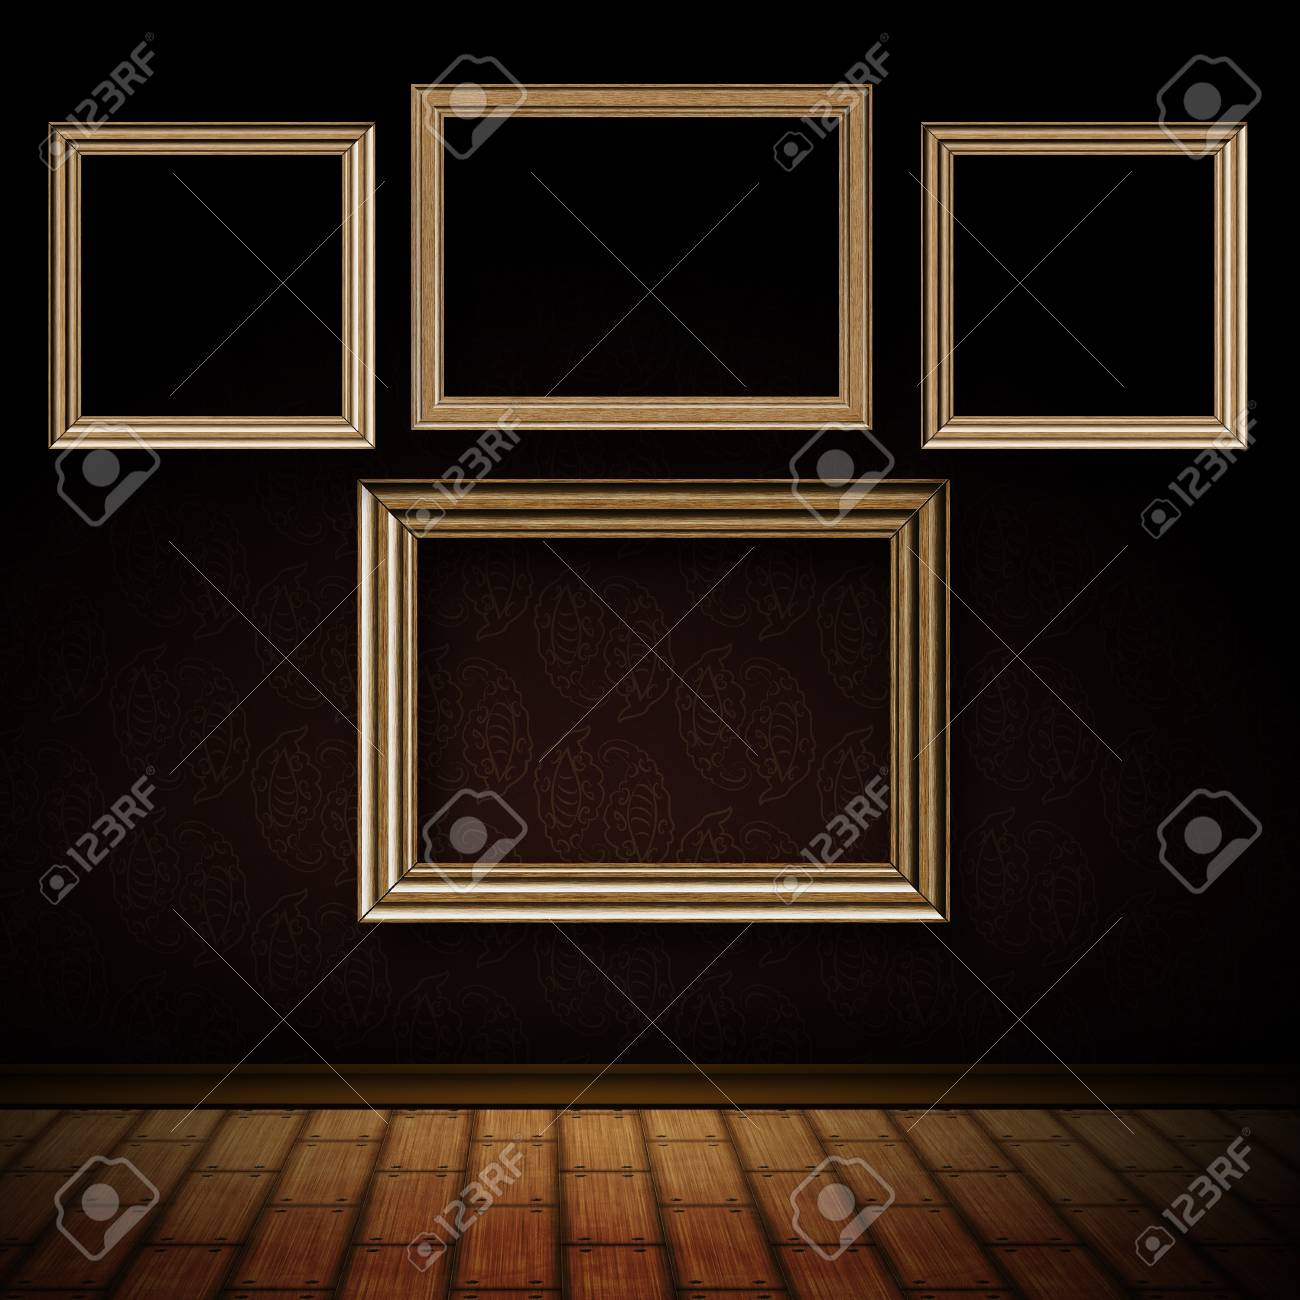 Grunge Old Room Interior With Vintage Wooden Frames. Stock Photo ...